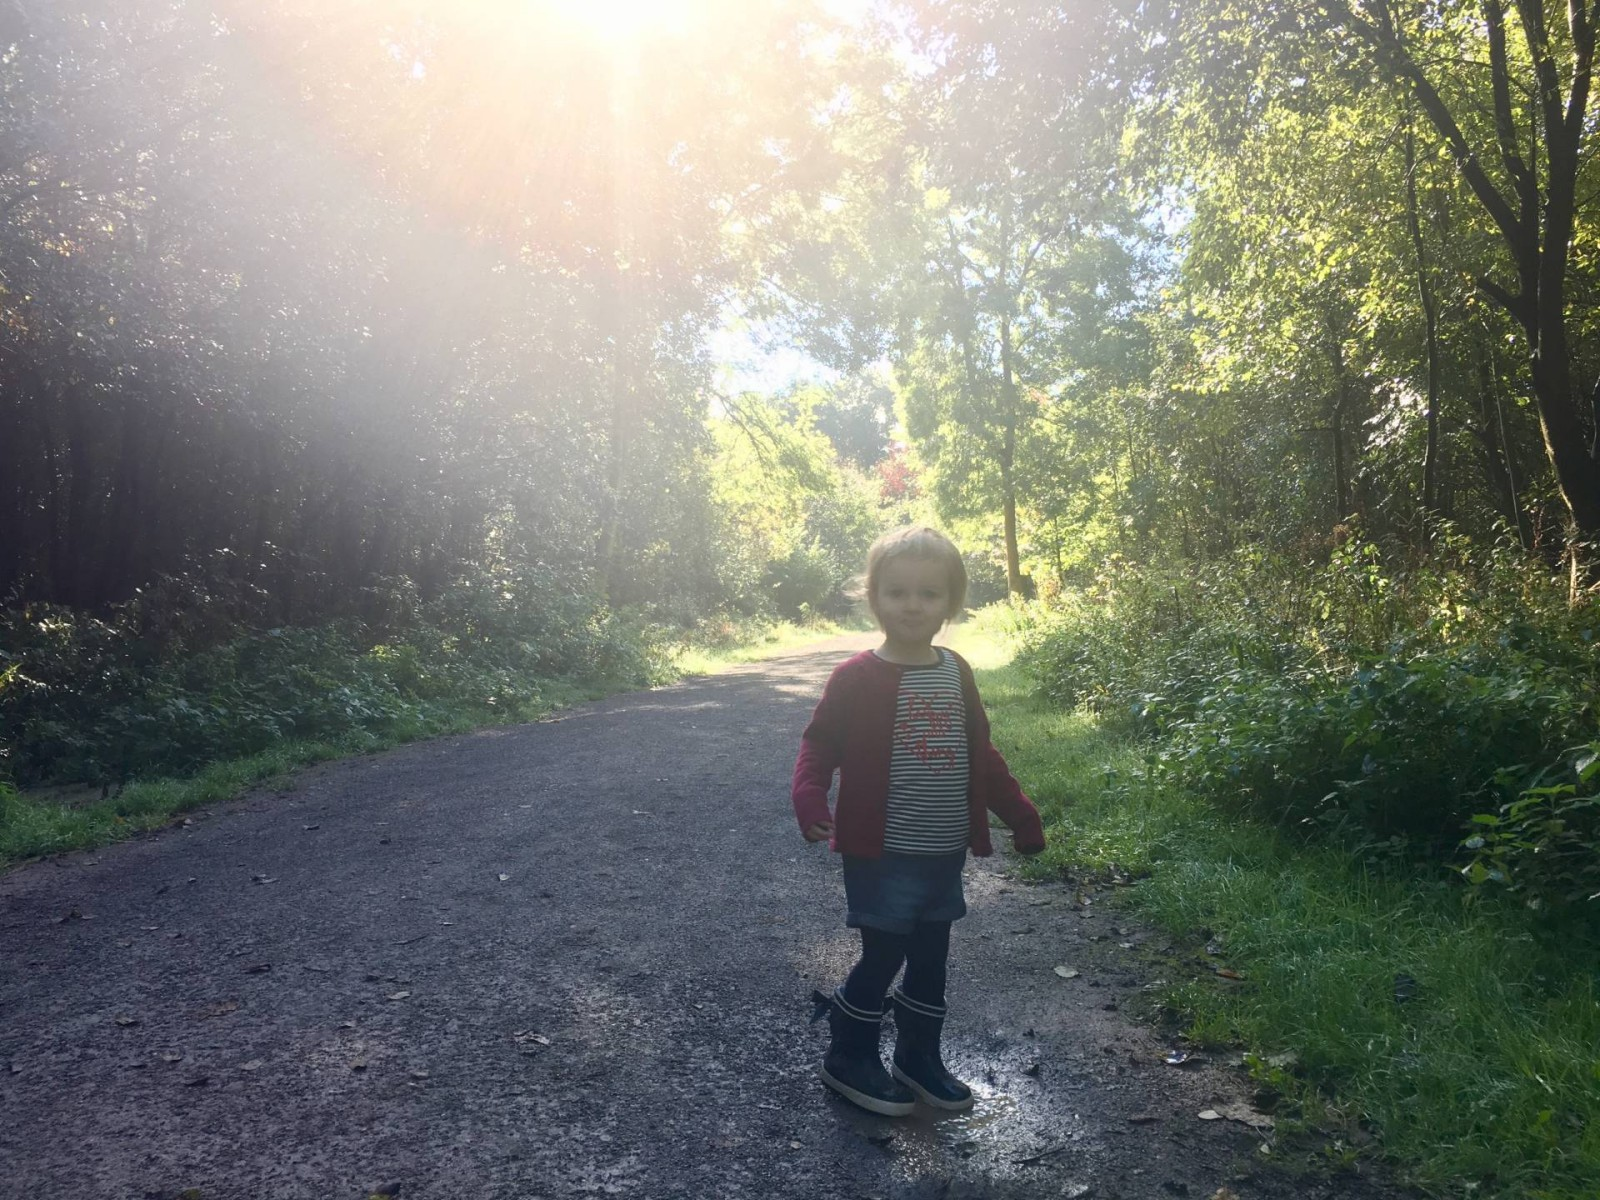 A day out at the Forest with #MamiaDaysOut challenge